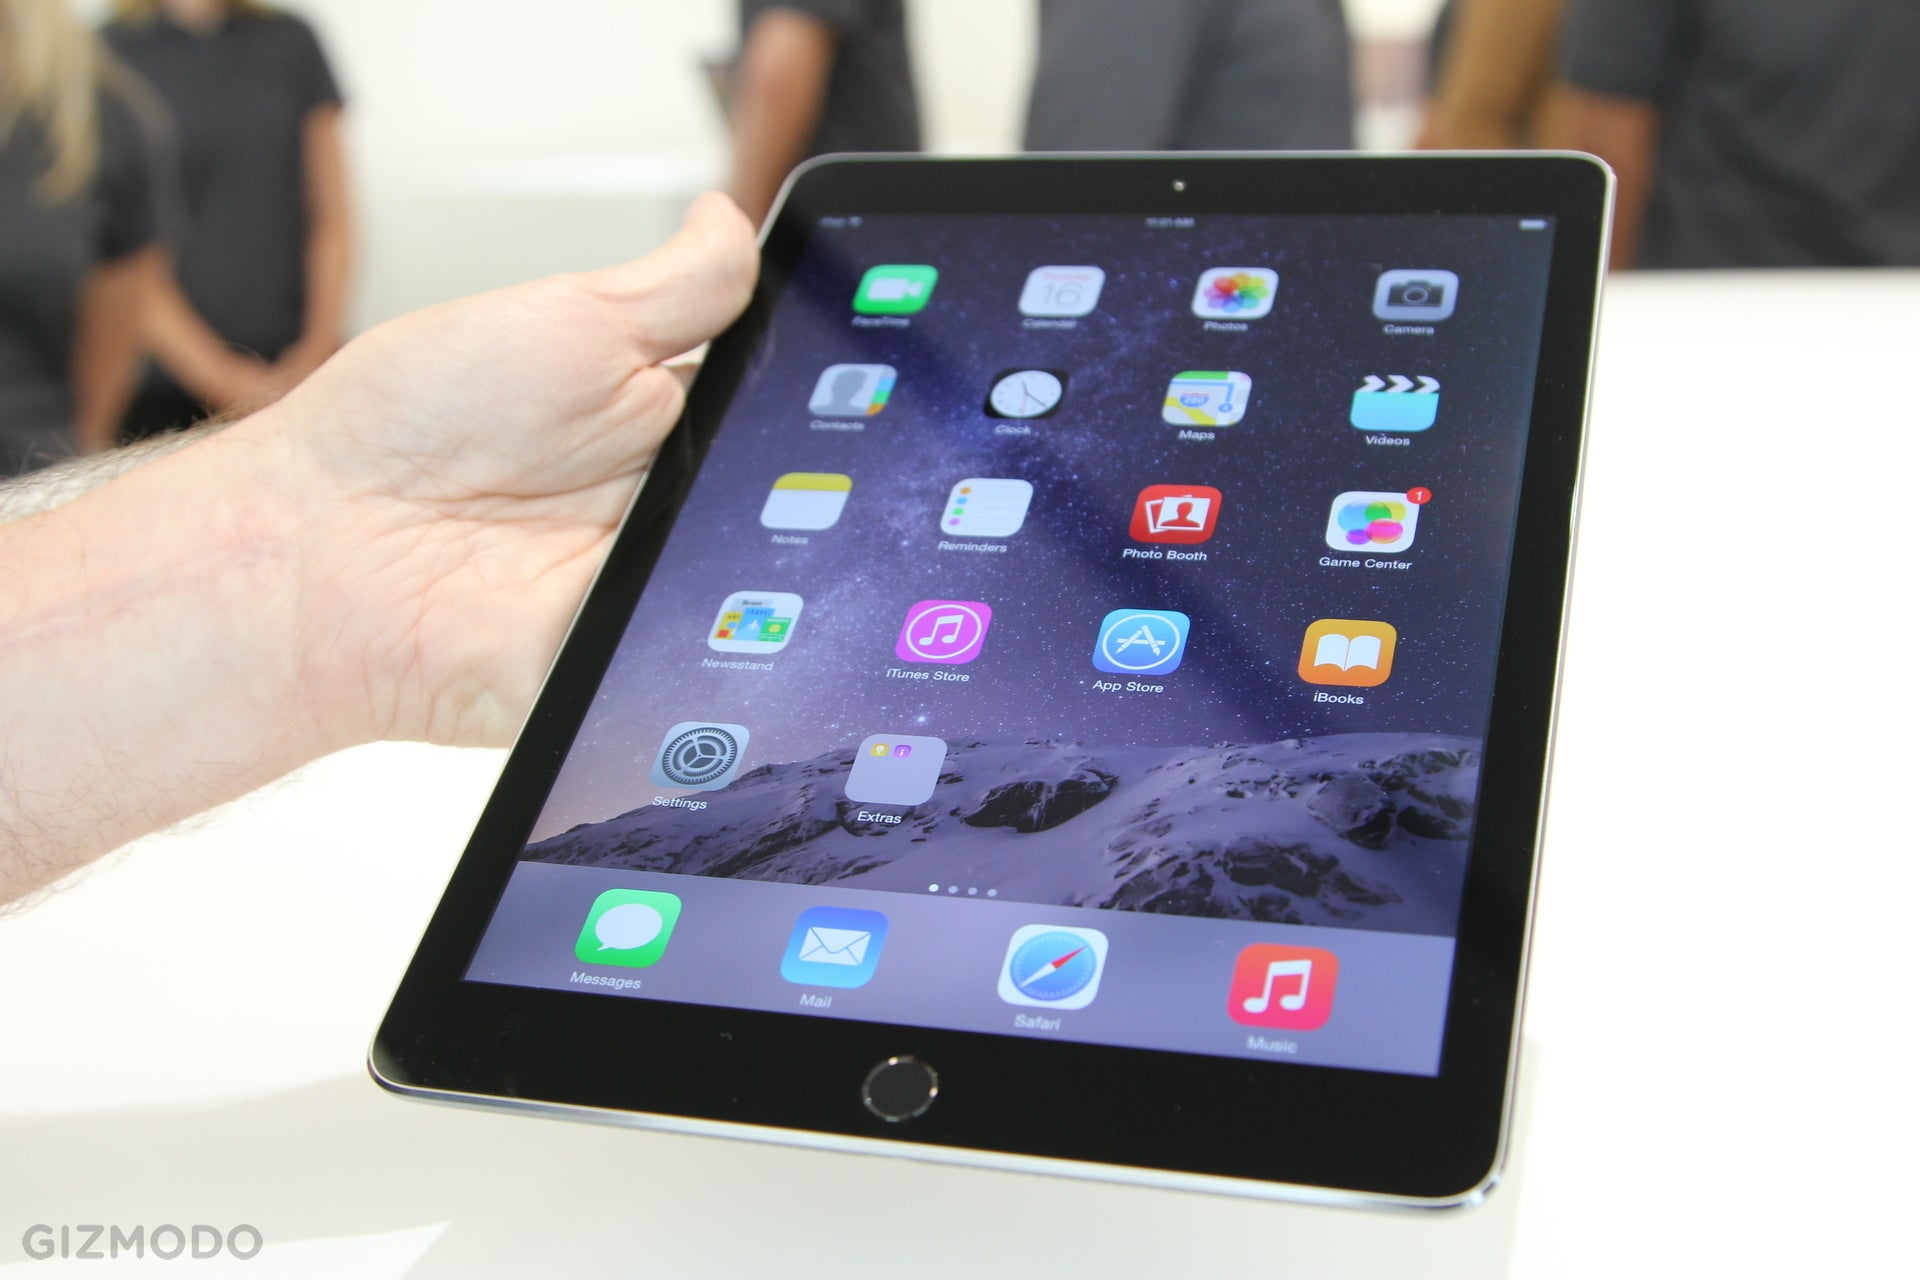 New ipad release date 2019 in Australia